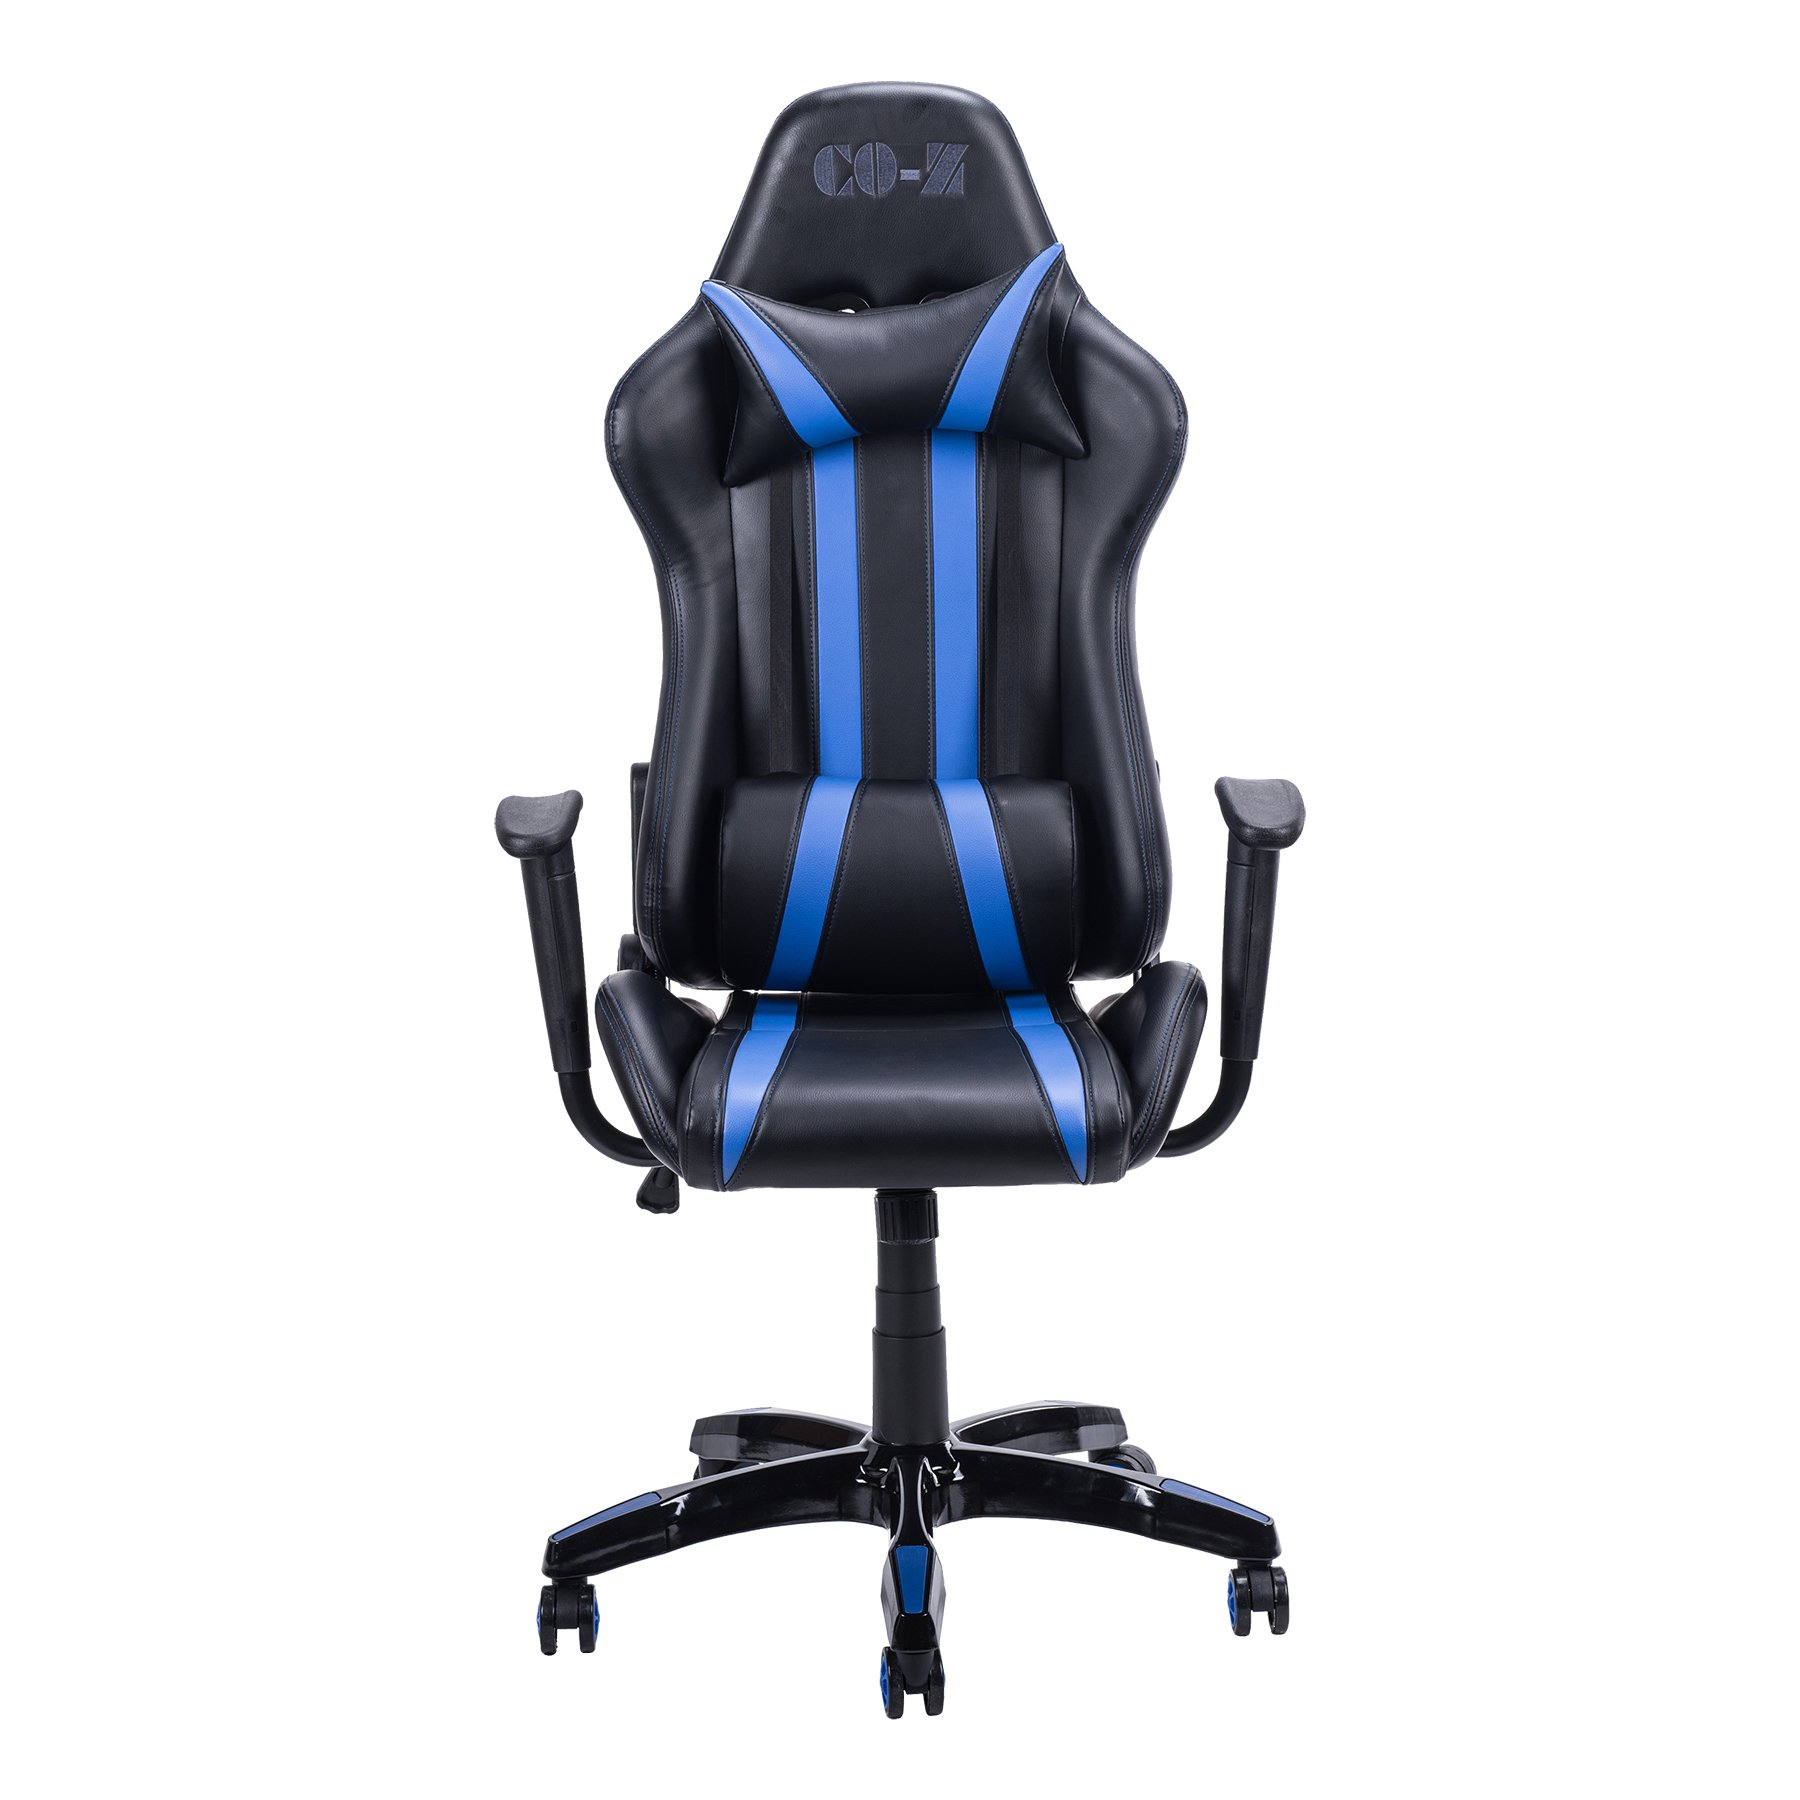 CO-Z Ergonomic PC Gaming Chair, High-back Comfortable Racing Style Executive Swivel Office Computer Desk Chair with Removable Lumbar Support and Headrest (Blue)